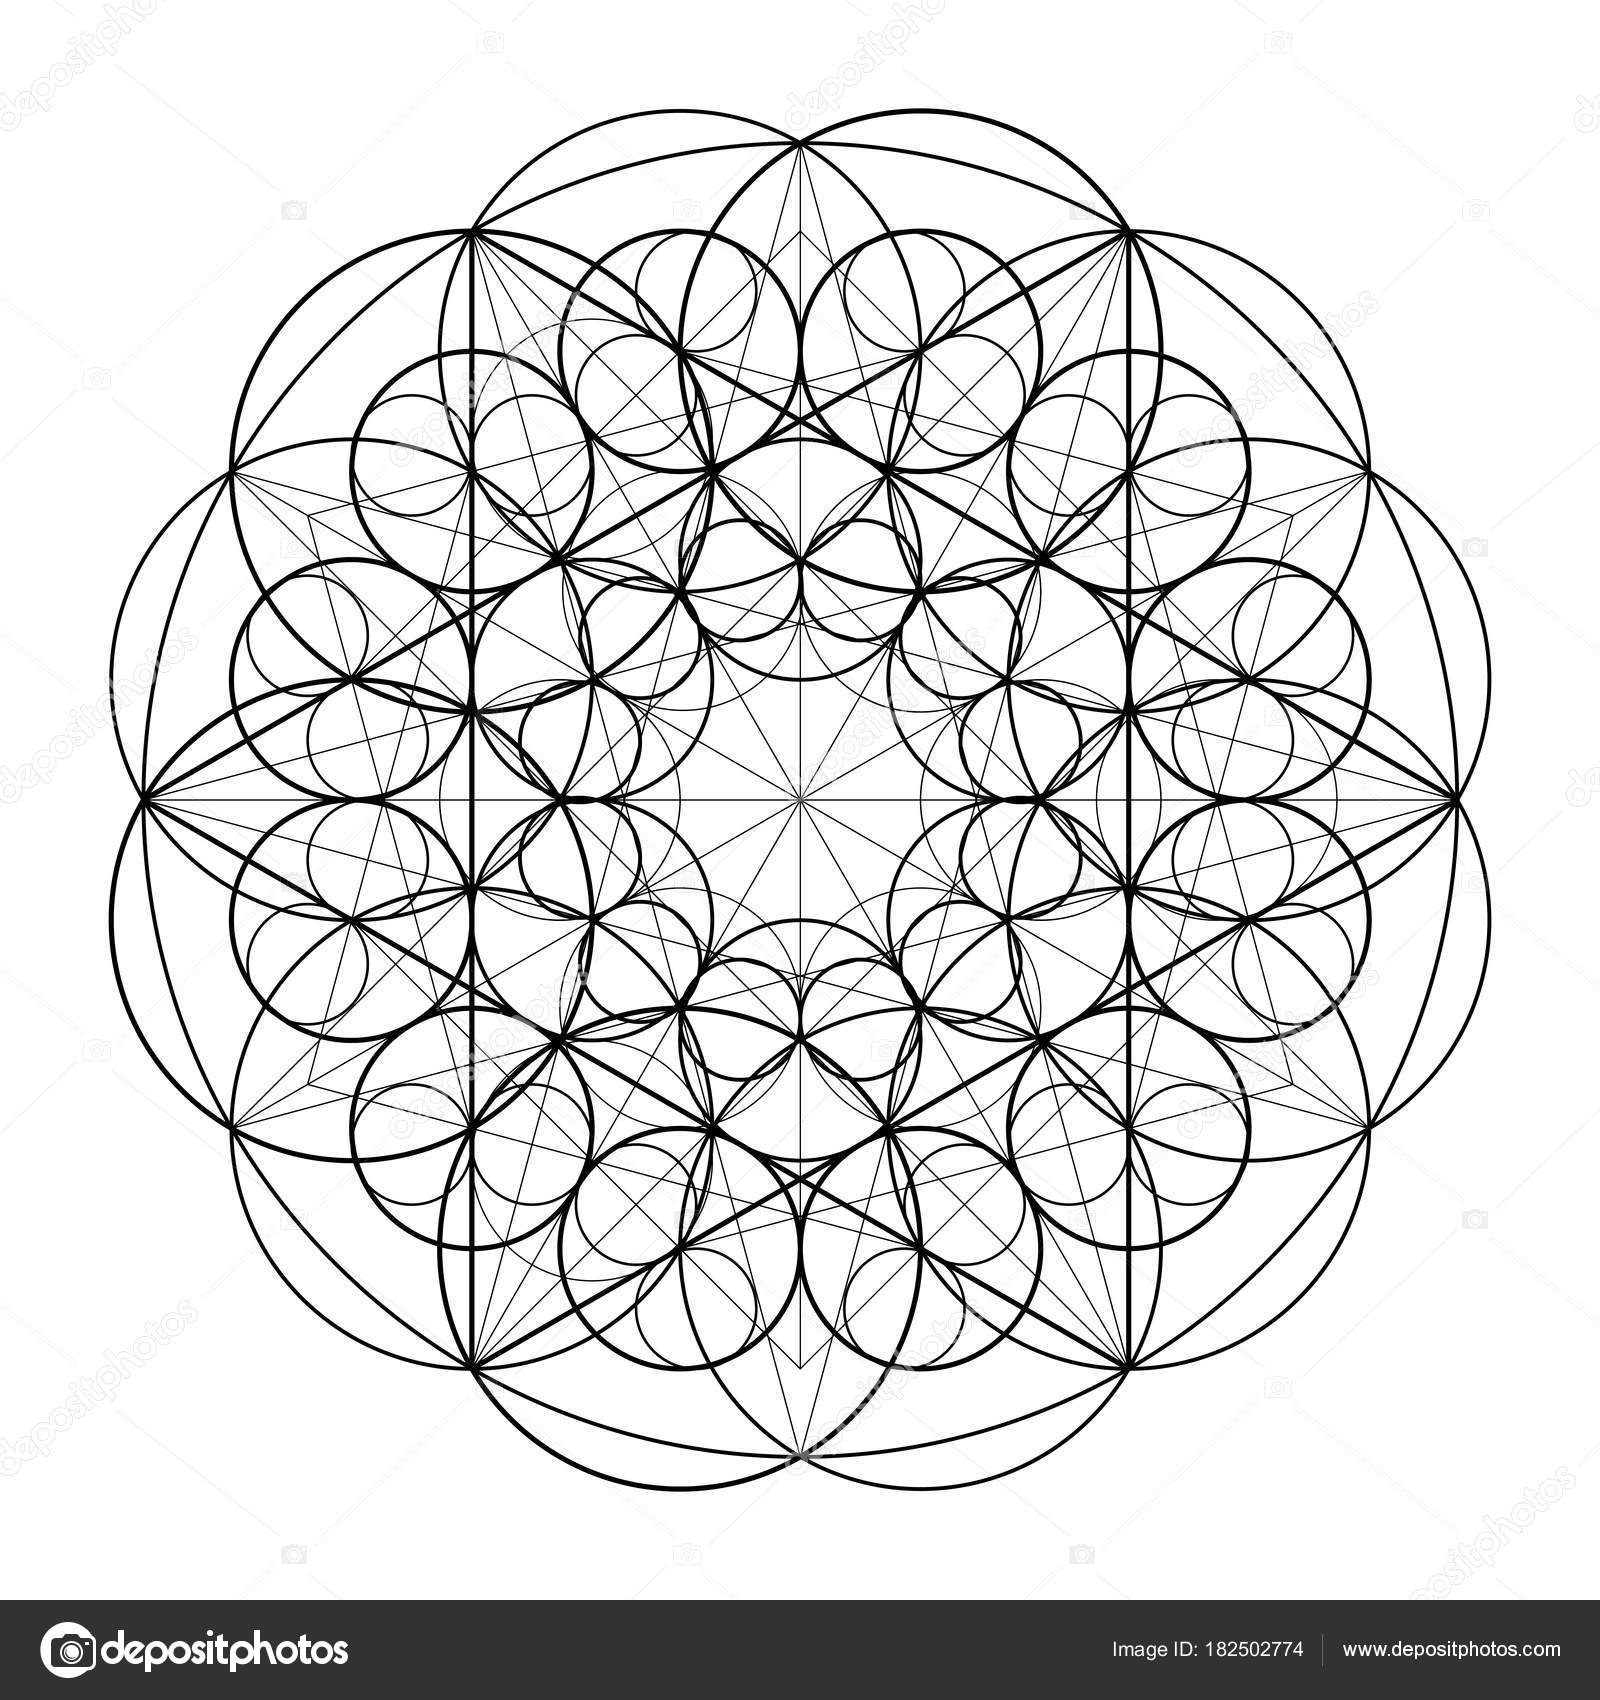 ornament from circles geometric pattern based on the repetition of